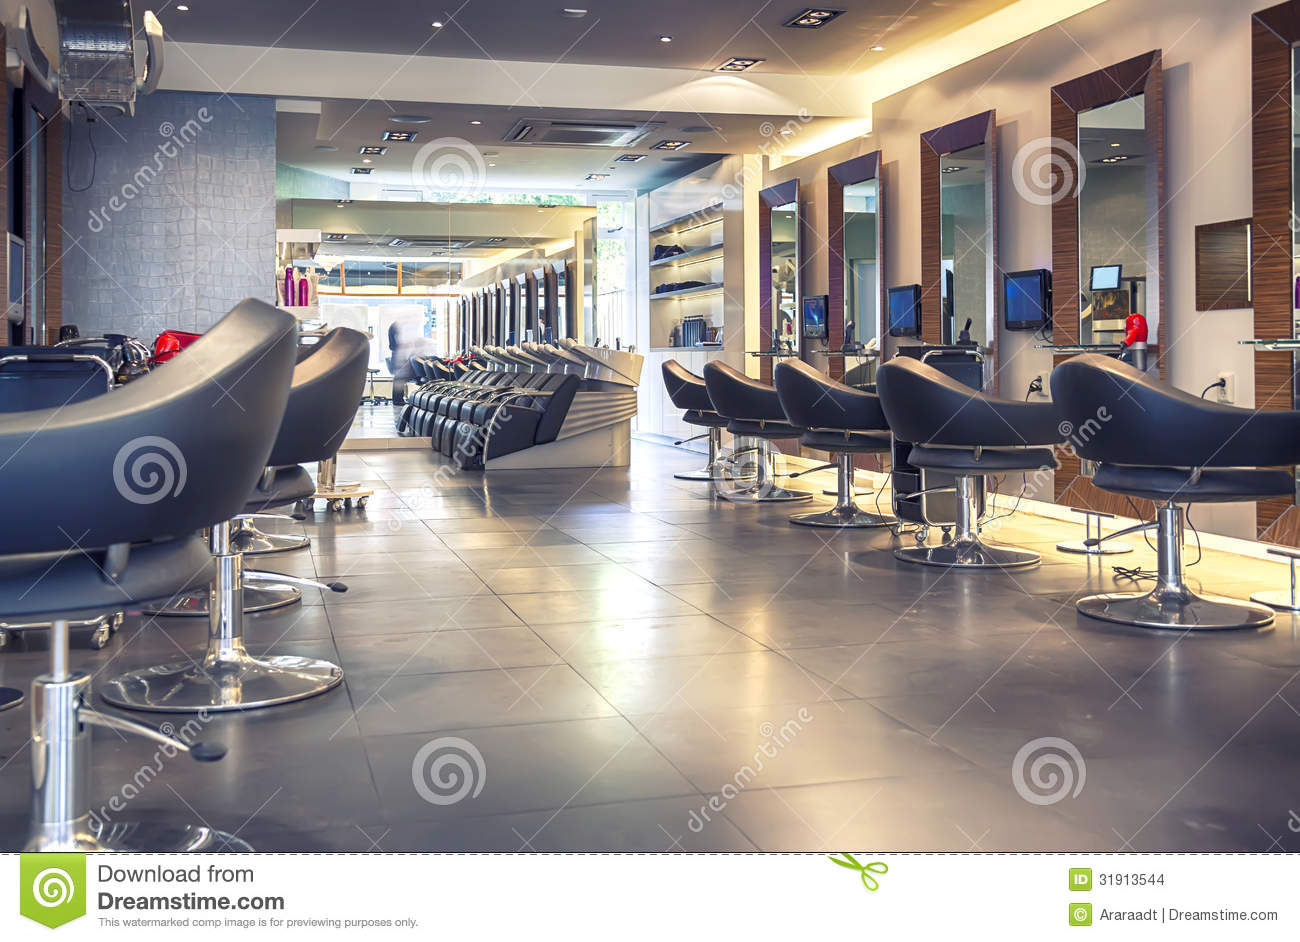 Salon De Coiffure Moderne : Salon de coiffure moderne images stock image